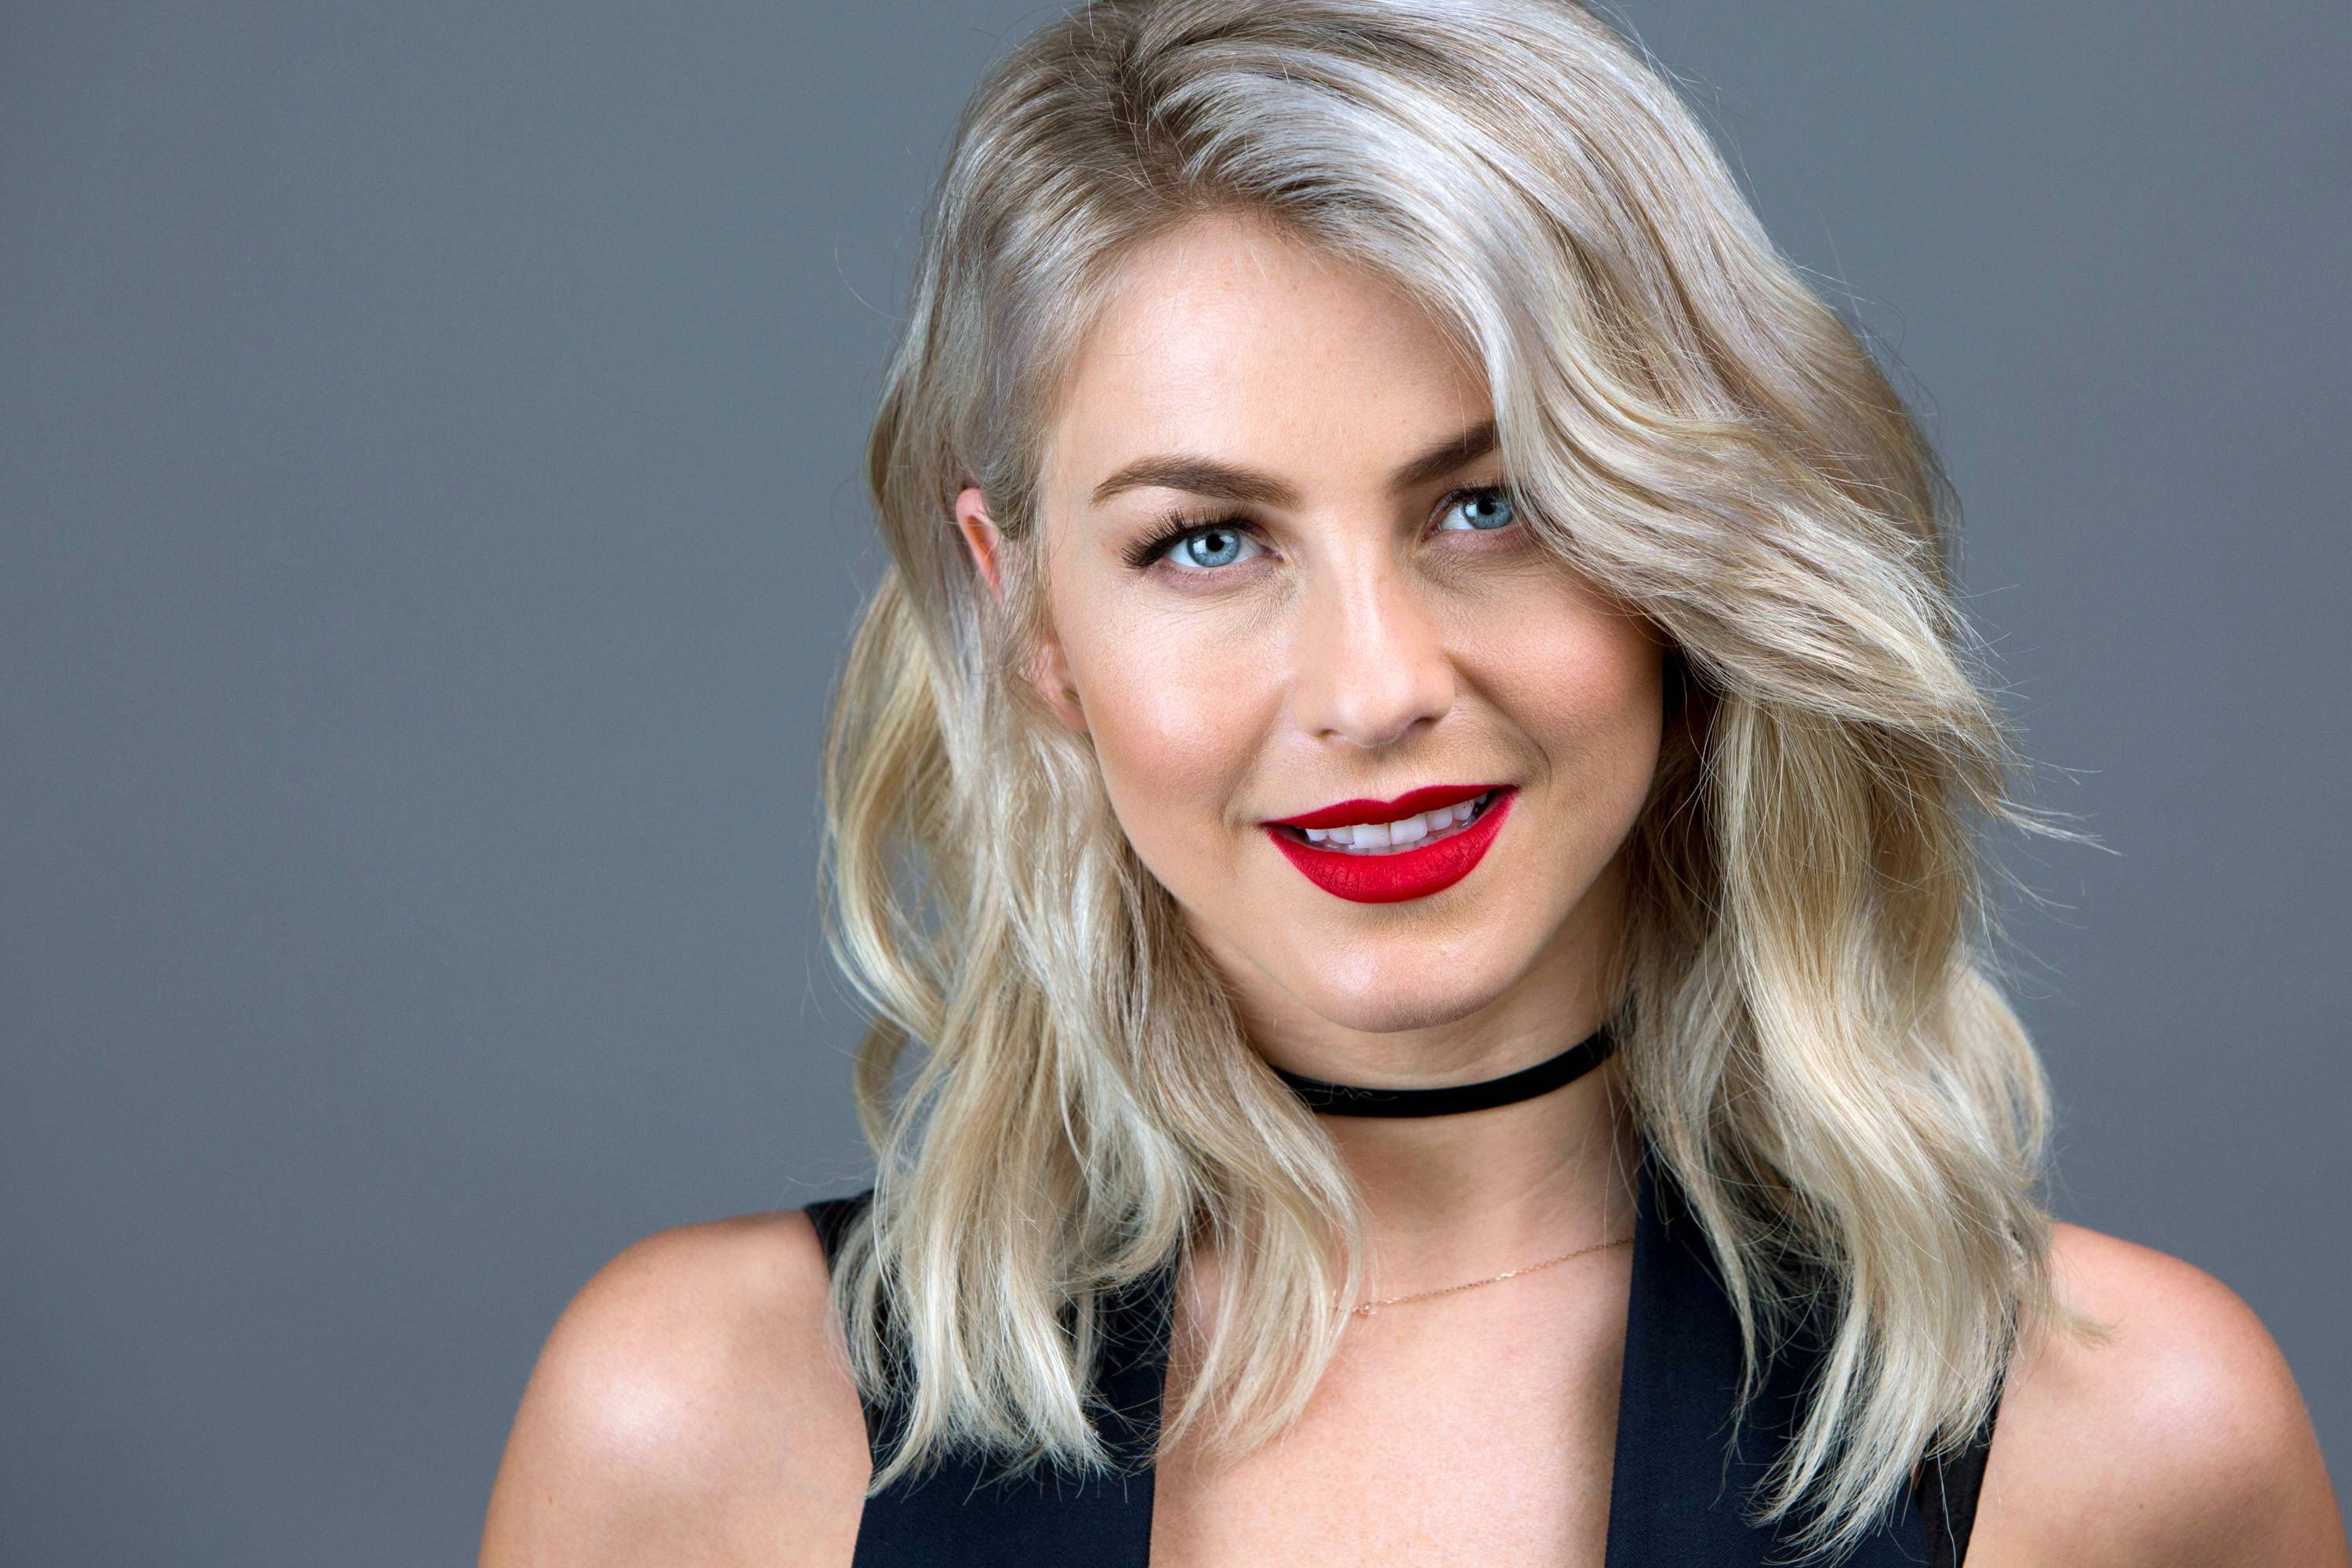 Aside from acting and dancing, Julianne Hough has her own lifestyle blog, and she is a brand ambassador for FitBit, the popular fitness tracker.